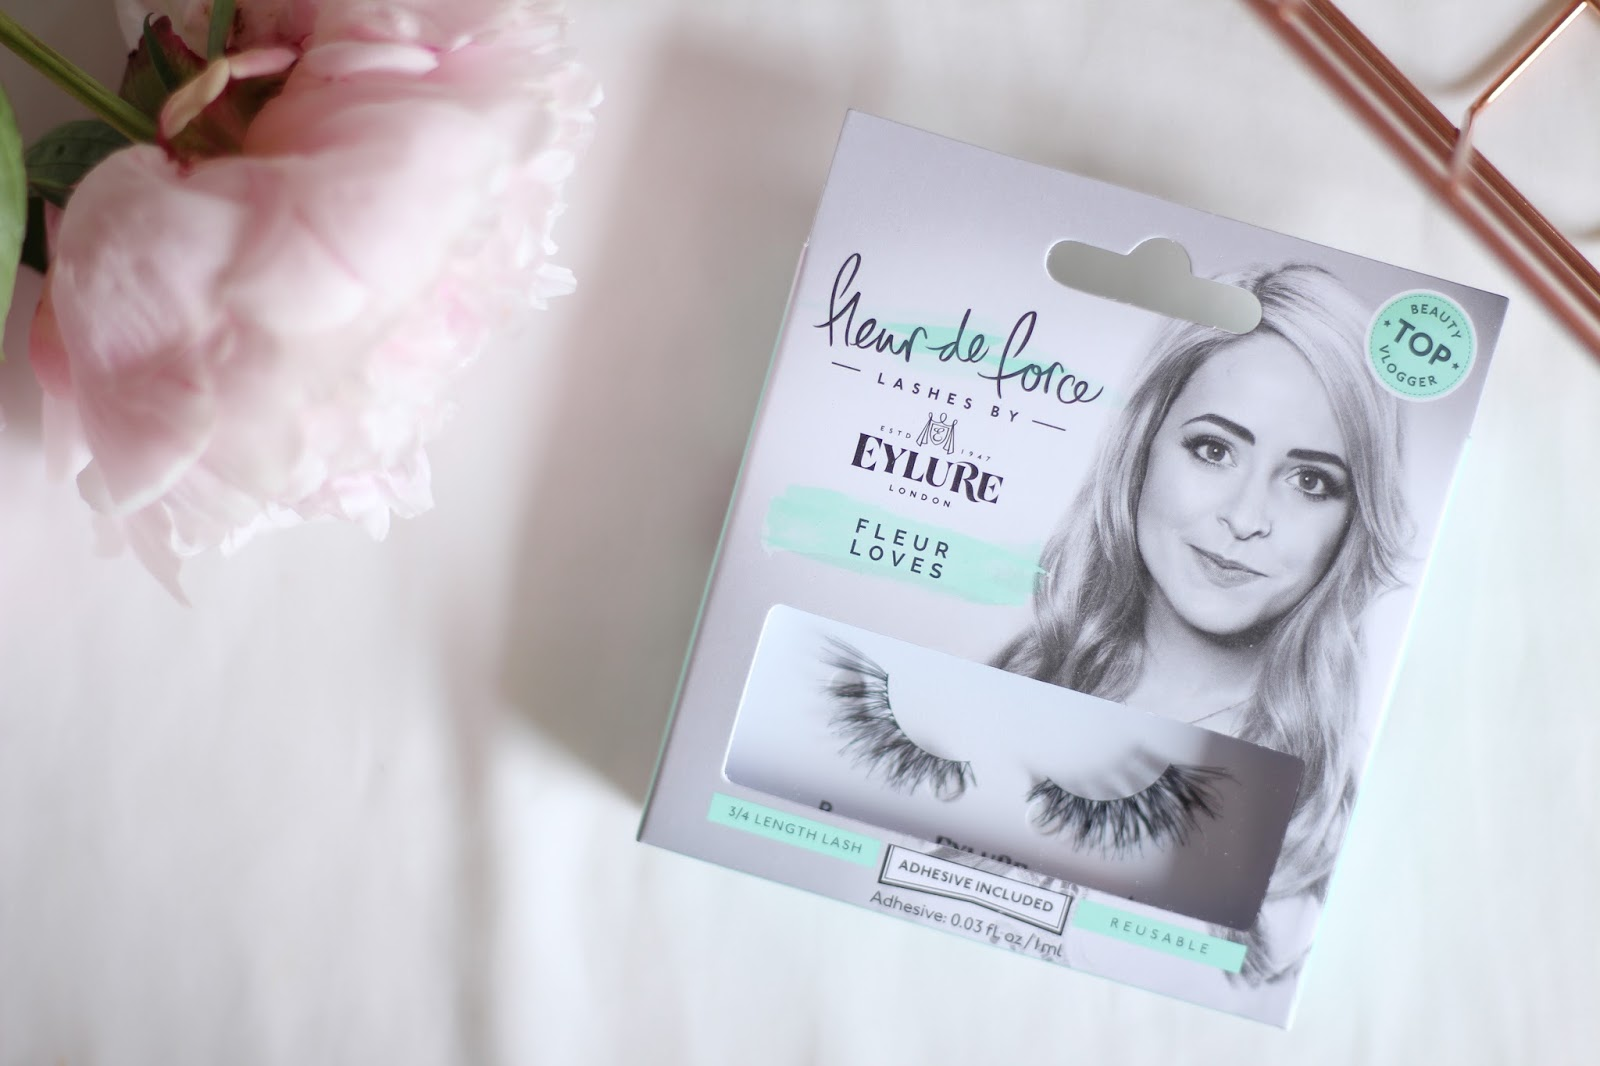 b0086282bb9 When I first tried the Fleur de Force lashes (way back – here's my first  review) the Fleur Loves lashes were by far my favourites.